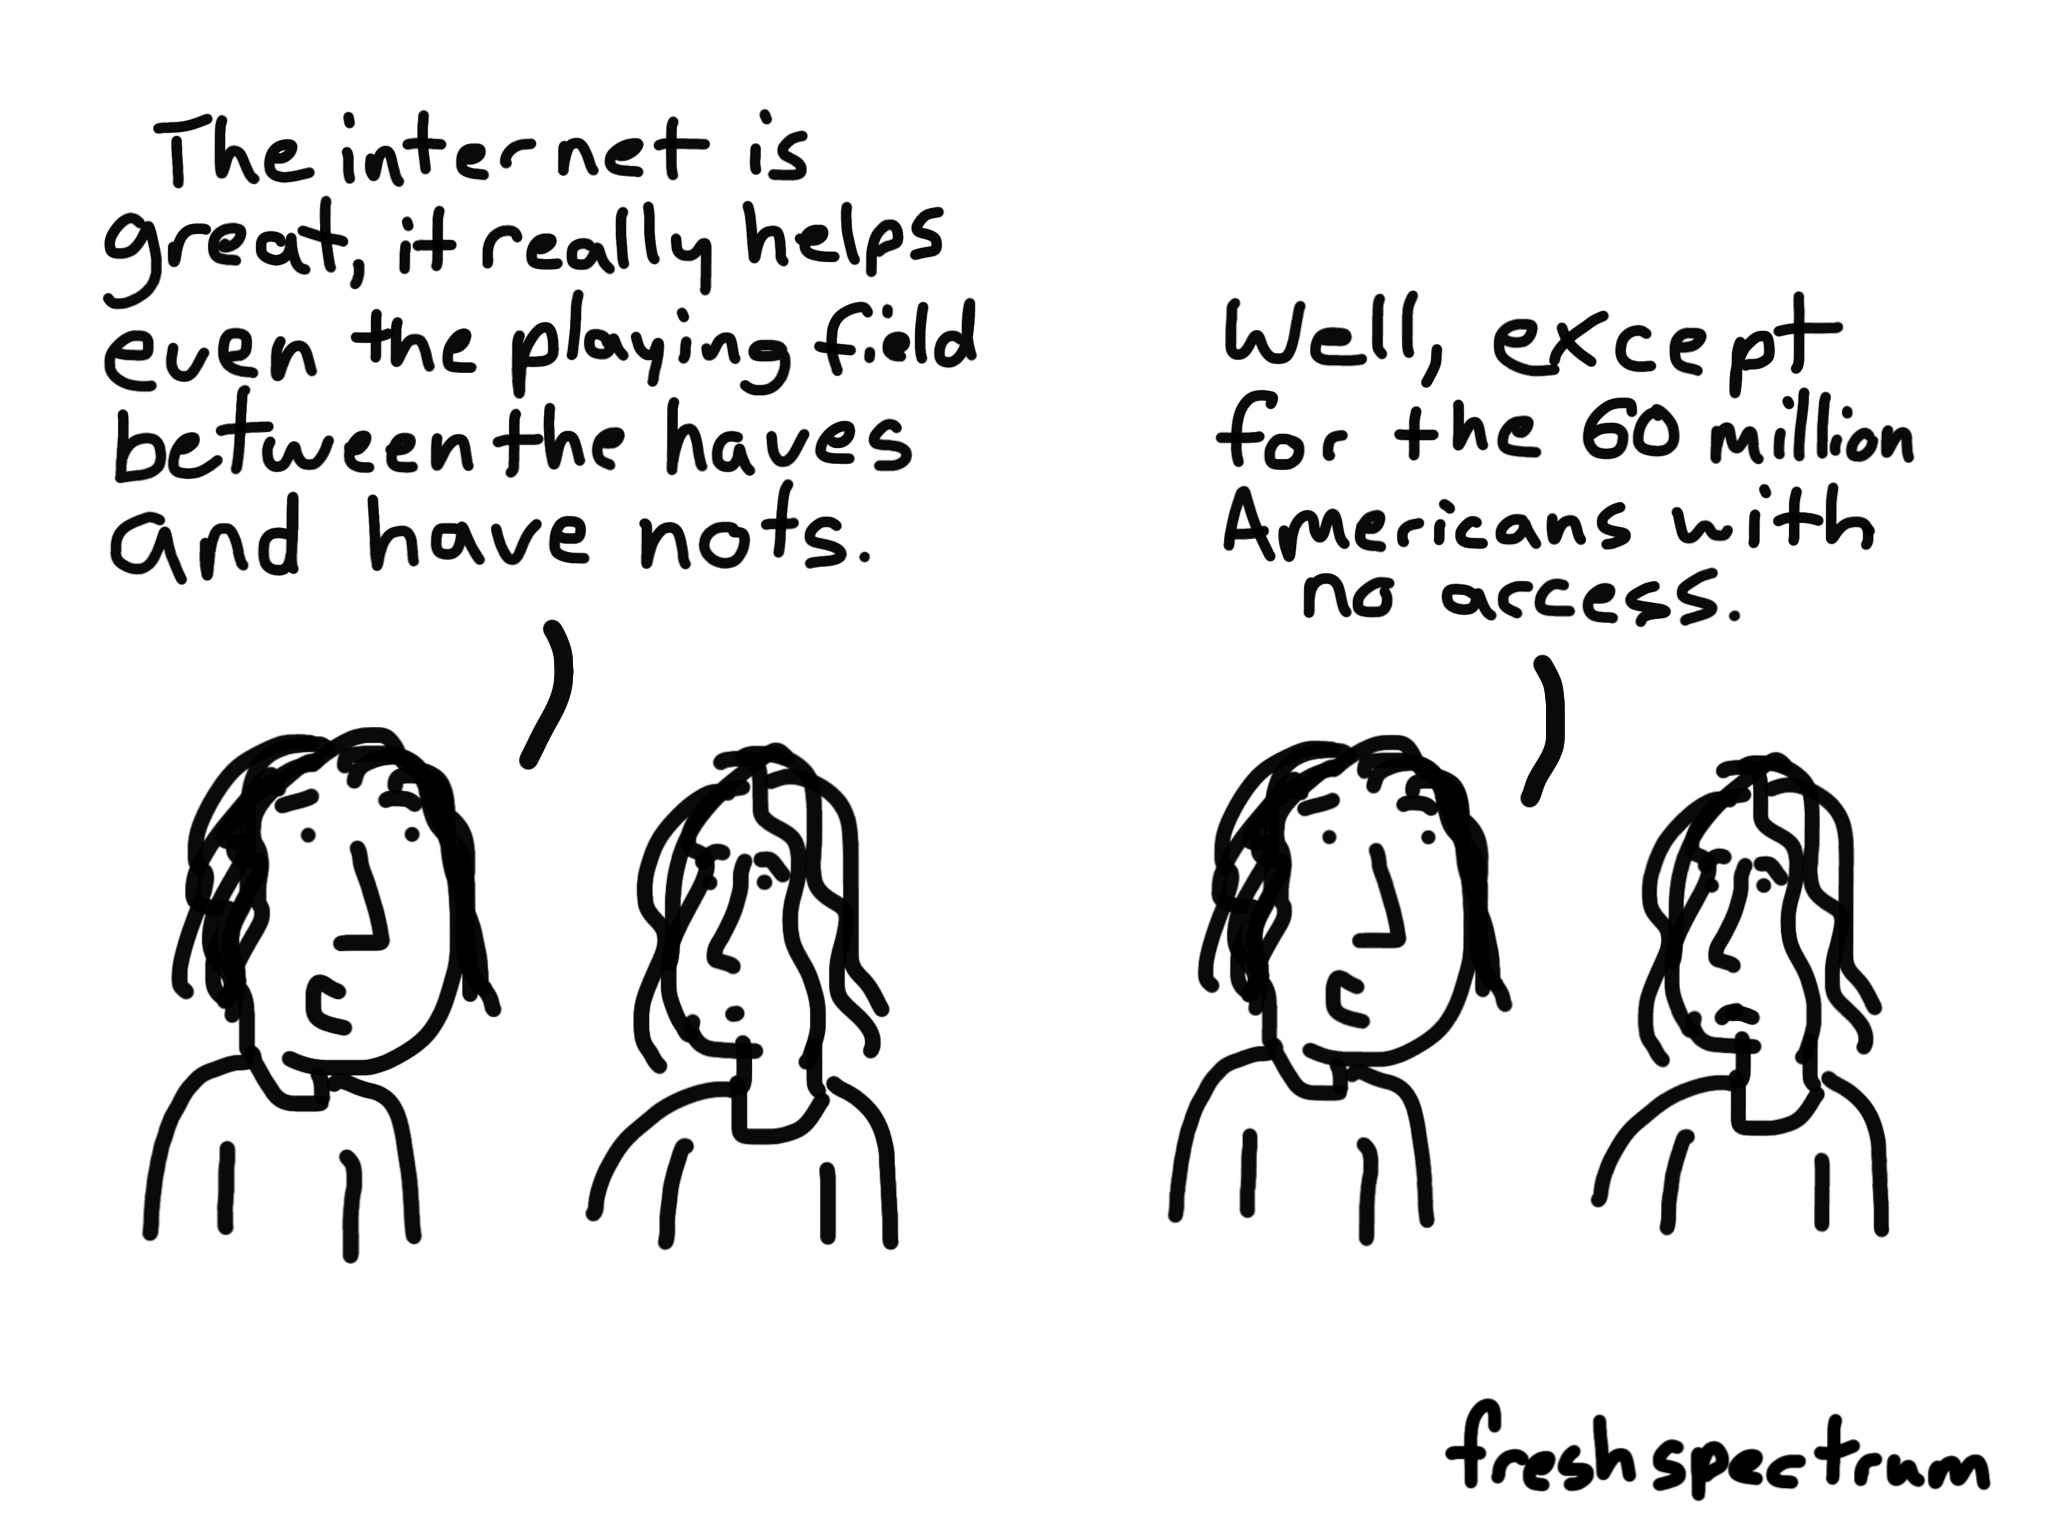 Cartoon: the internet is great, it really helps even the playing field between the haves and have nots...well except for the 60 million Americans with no access.